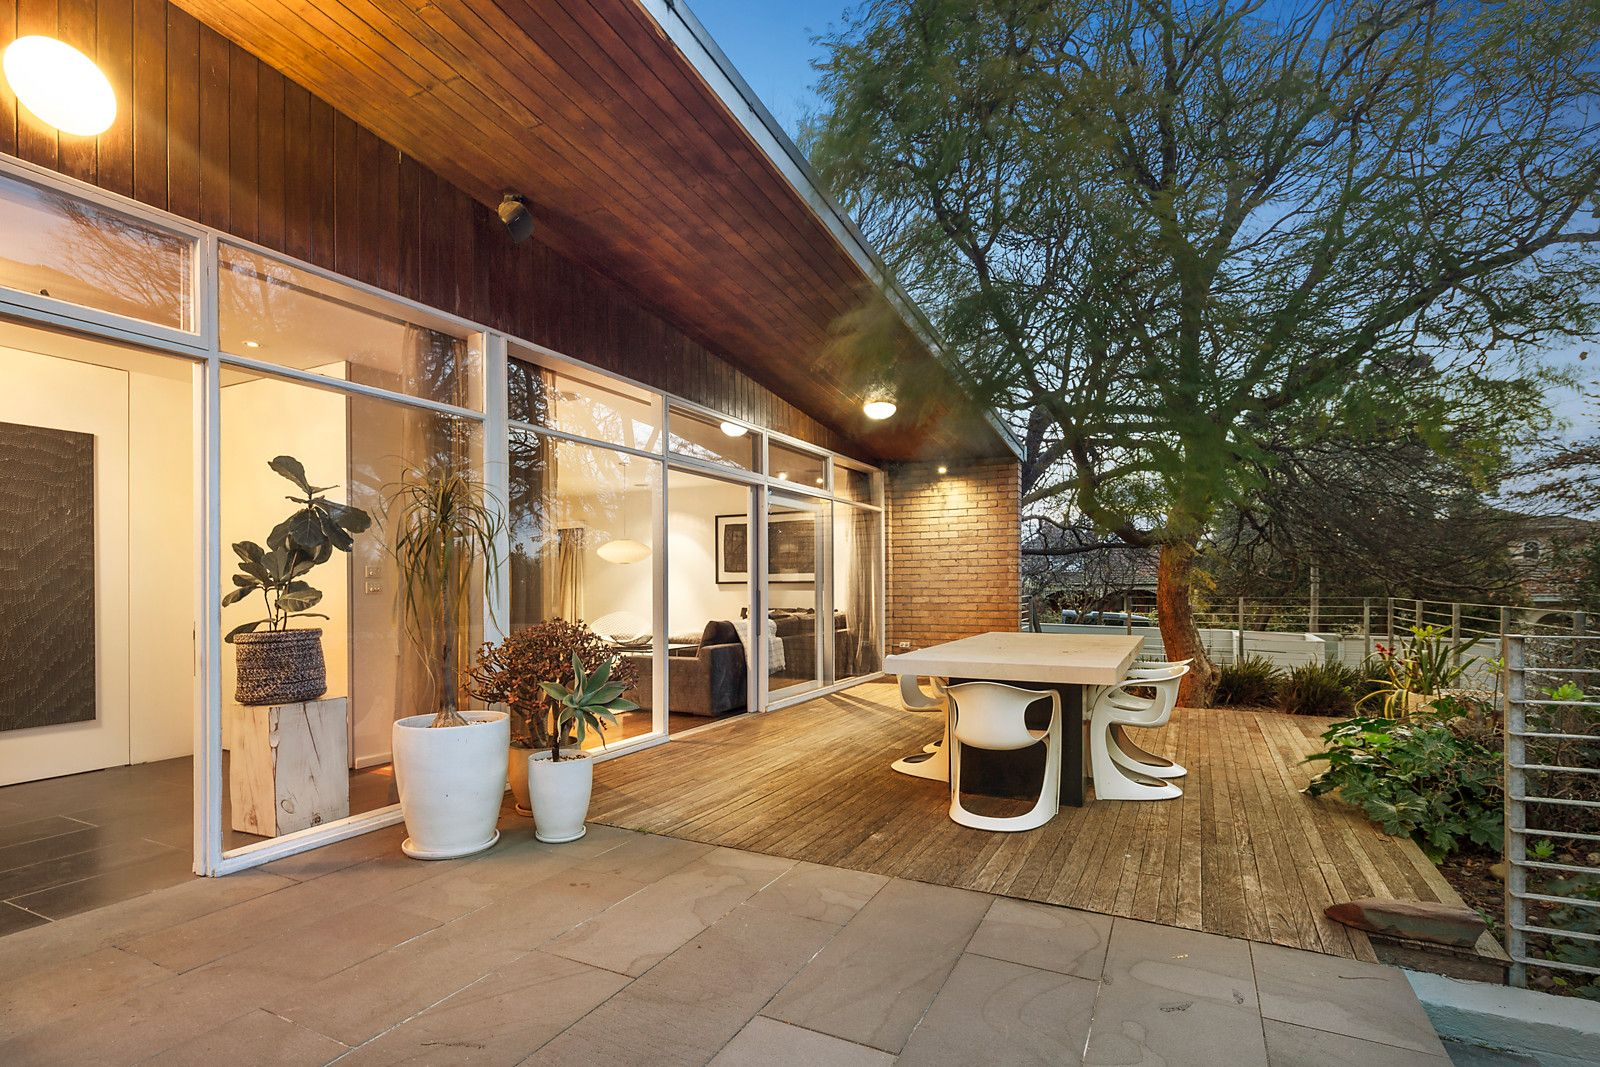 House for sale at 94 Normanby Road, Kew VIC 3101. View